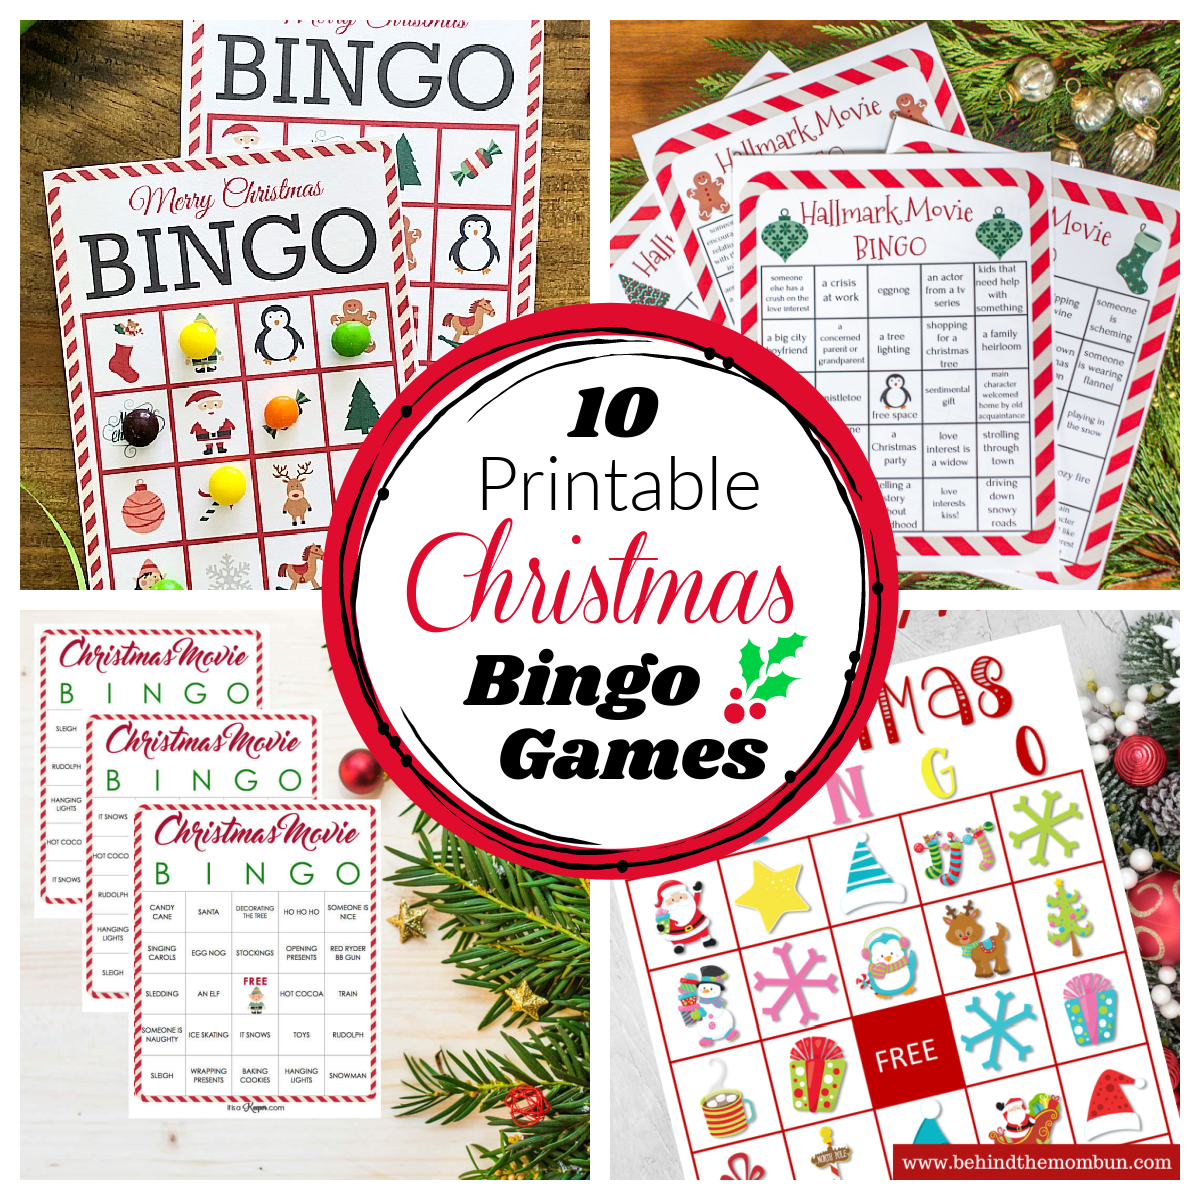 Printable Christmas Bingo Games